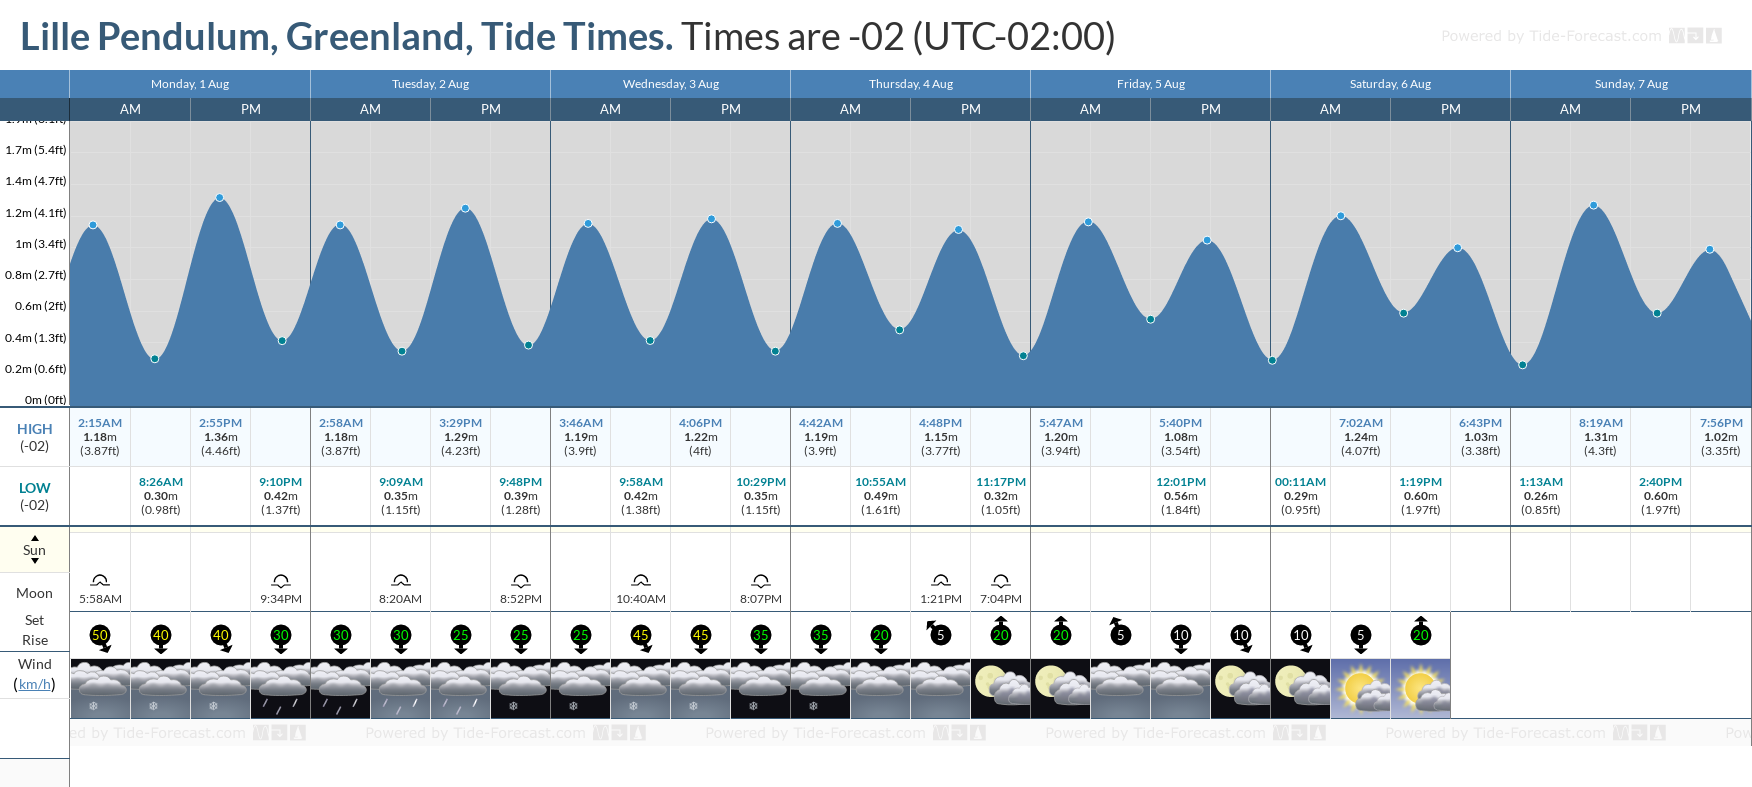 Lille Pendulum, Greenland Tide Chart including high and low tide tide times for the next 7 days